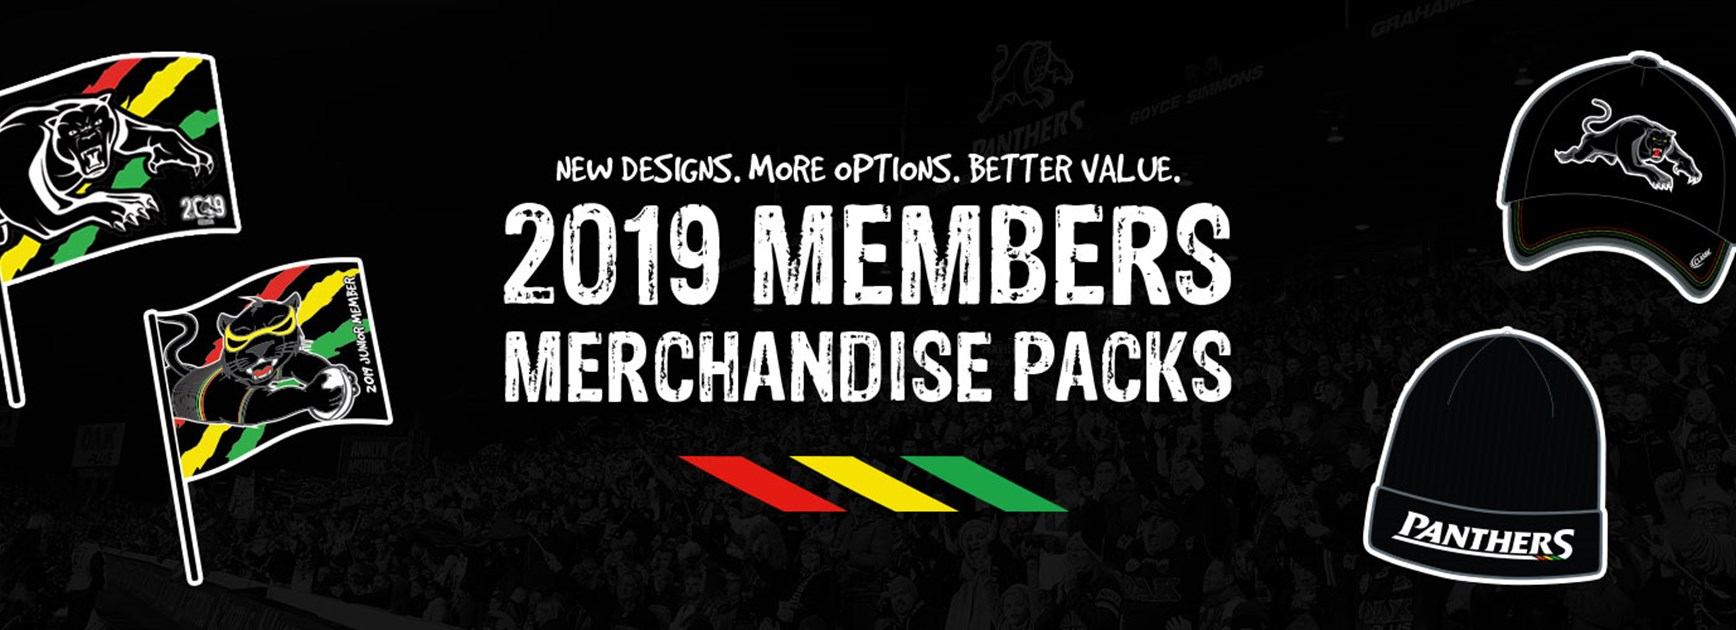 Panthers unveils 2019 member packs